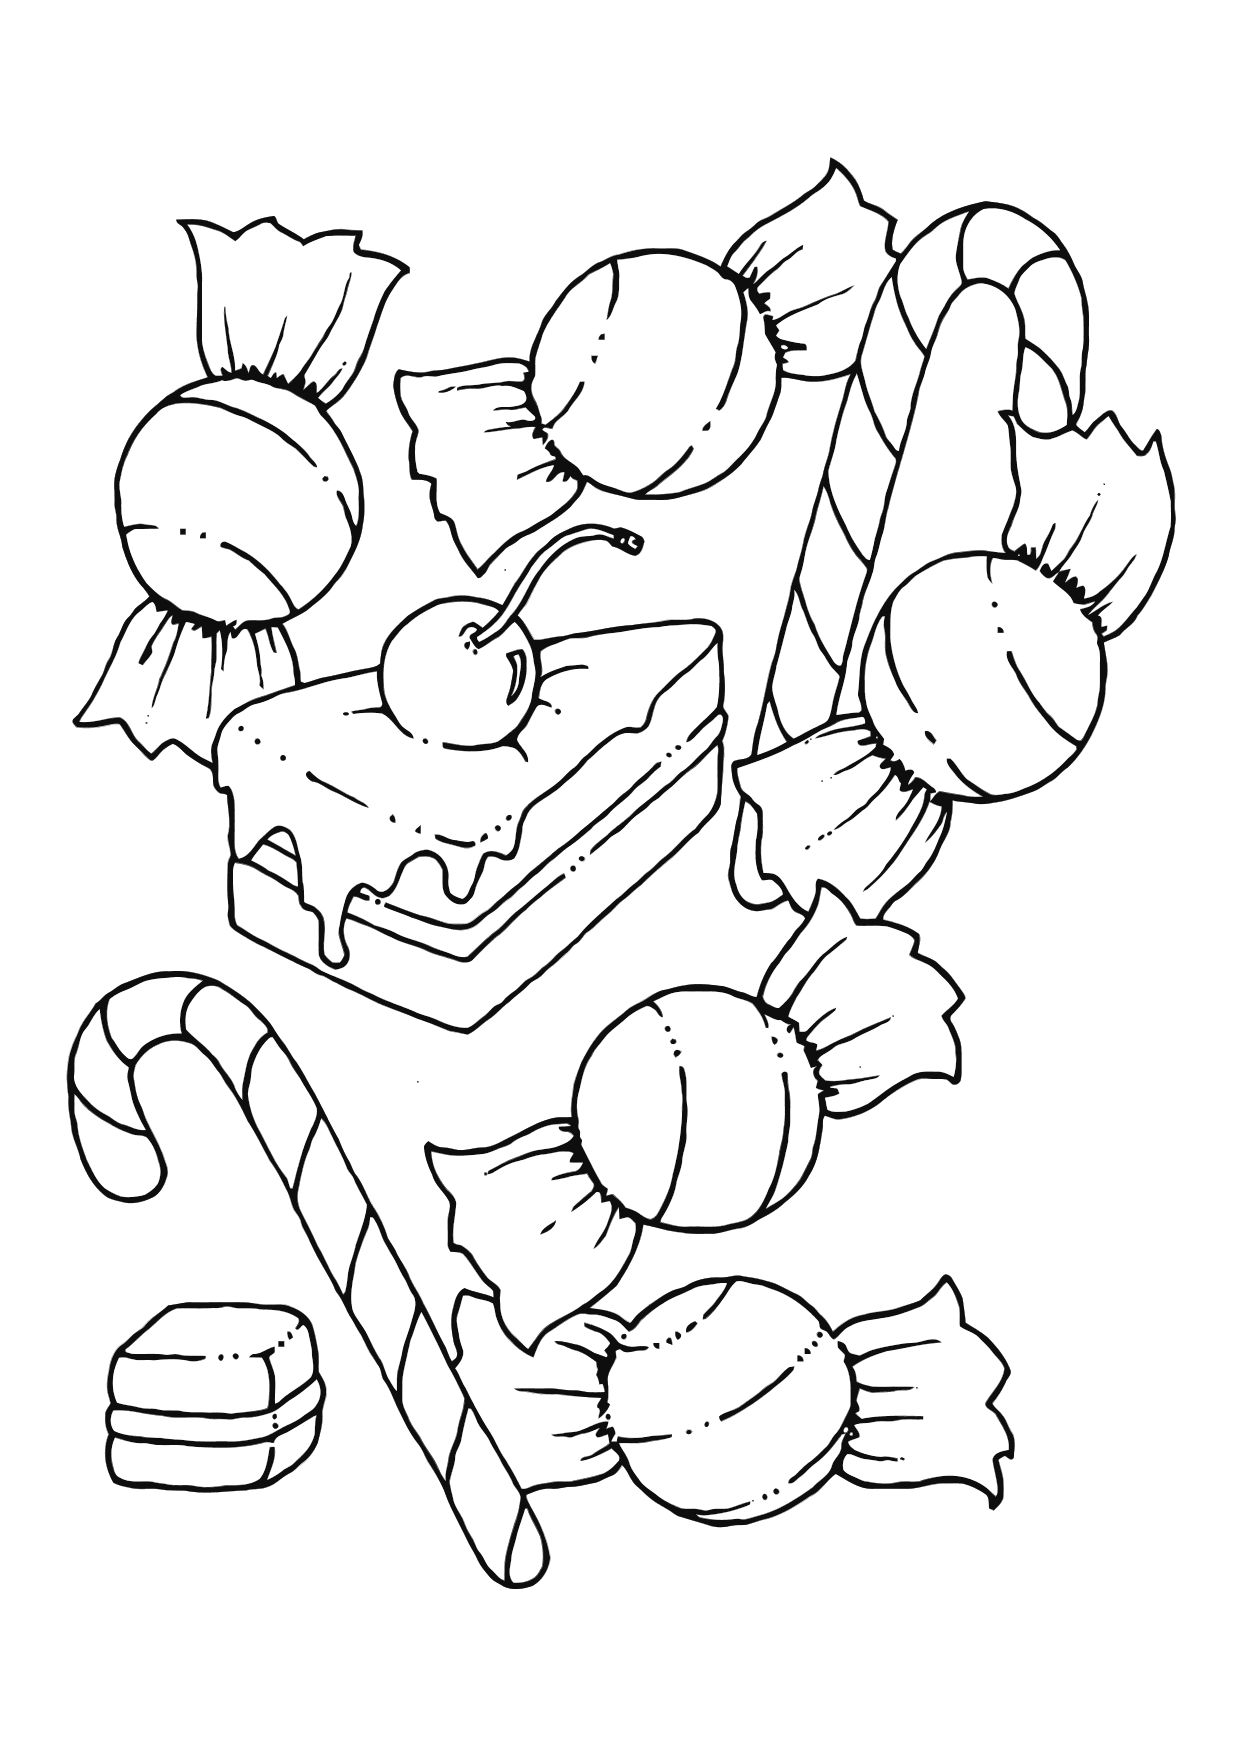 1240x1750 Trendy Design Candy Coloring Pages To Print For Gingerbread House